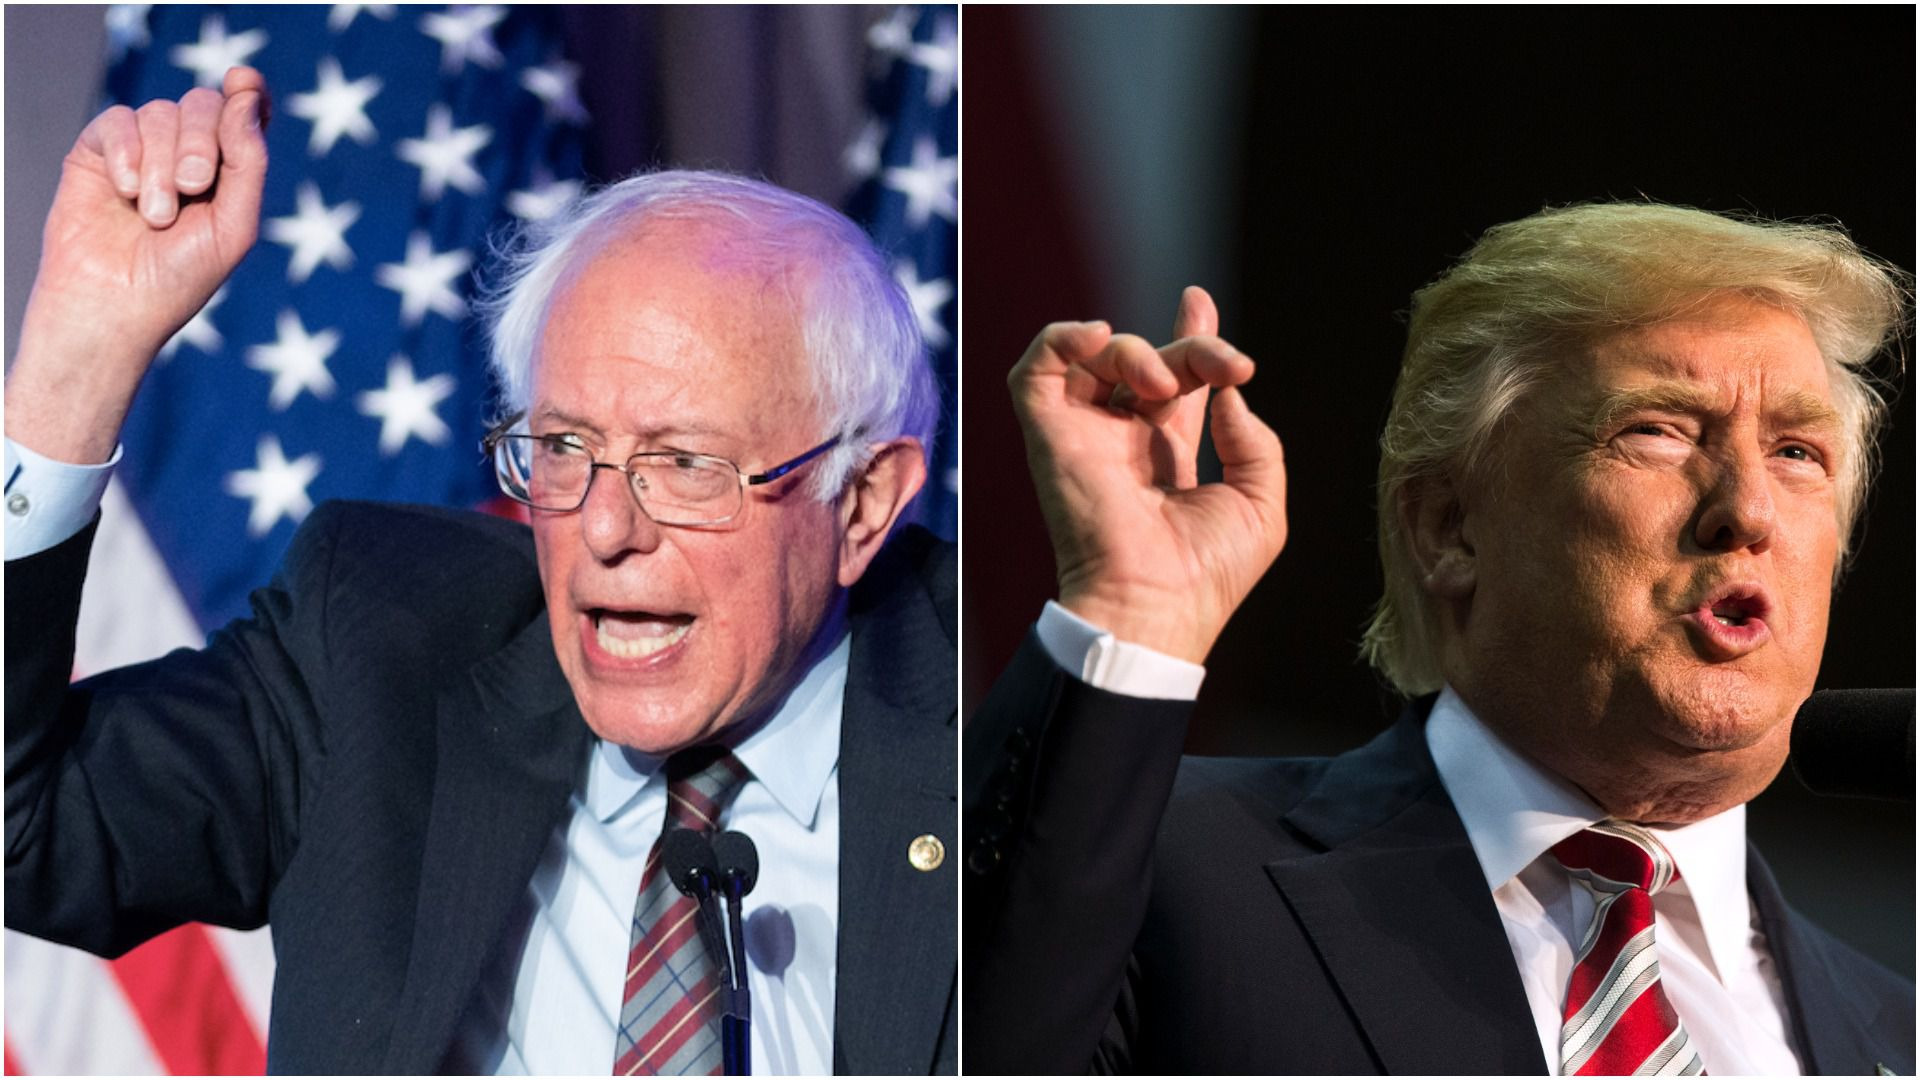 A split photo featuring Sanders and Trump at rallies